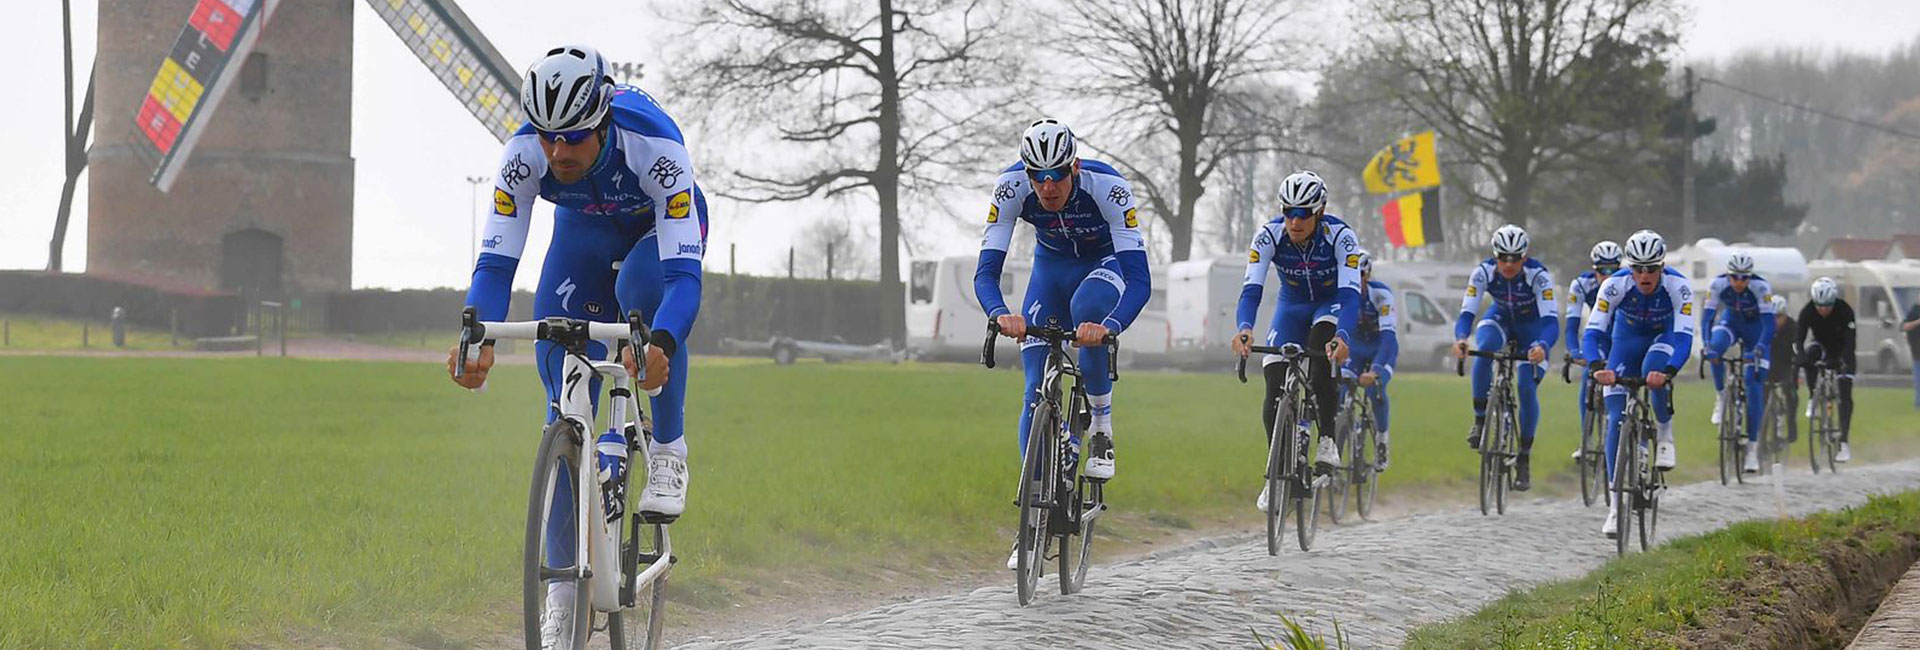 PARIGI ROUBAIX 2019 CON QUICK-STEP FLOORS - BIKE DIVISION VIP PRO EXPERIENCE - foto copyright TdwSport.com /